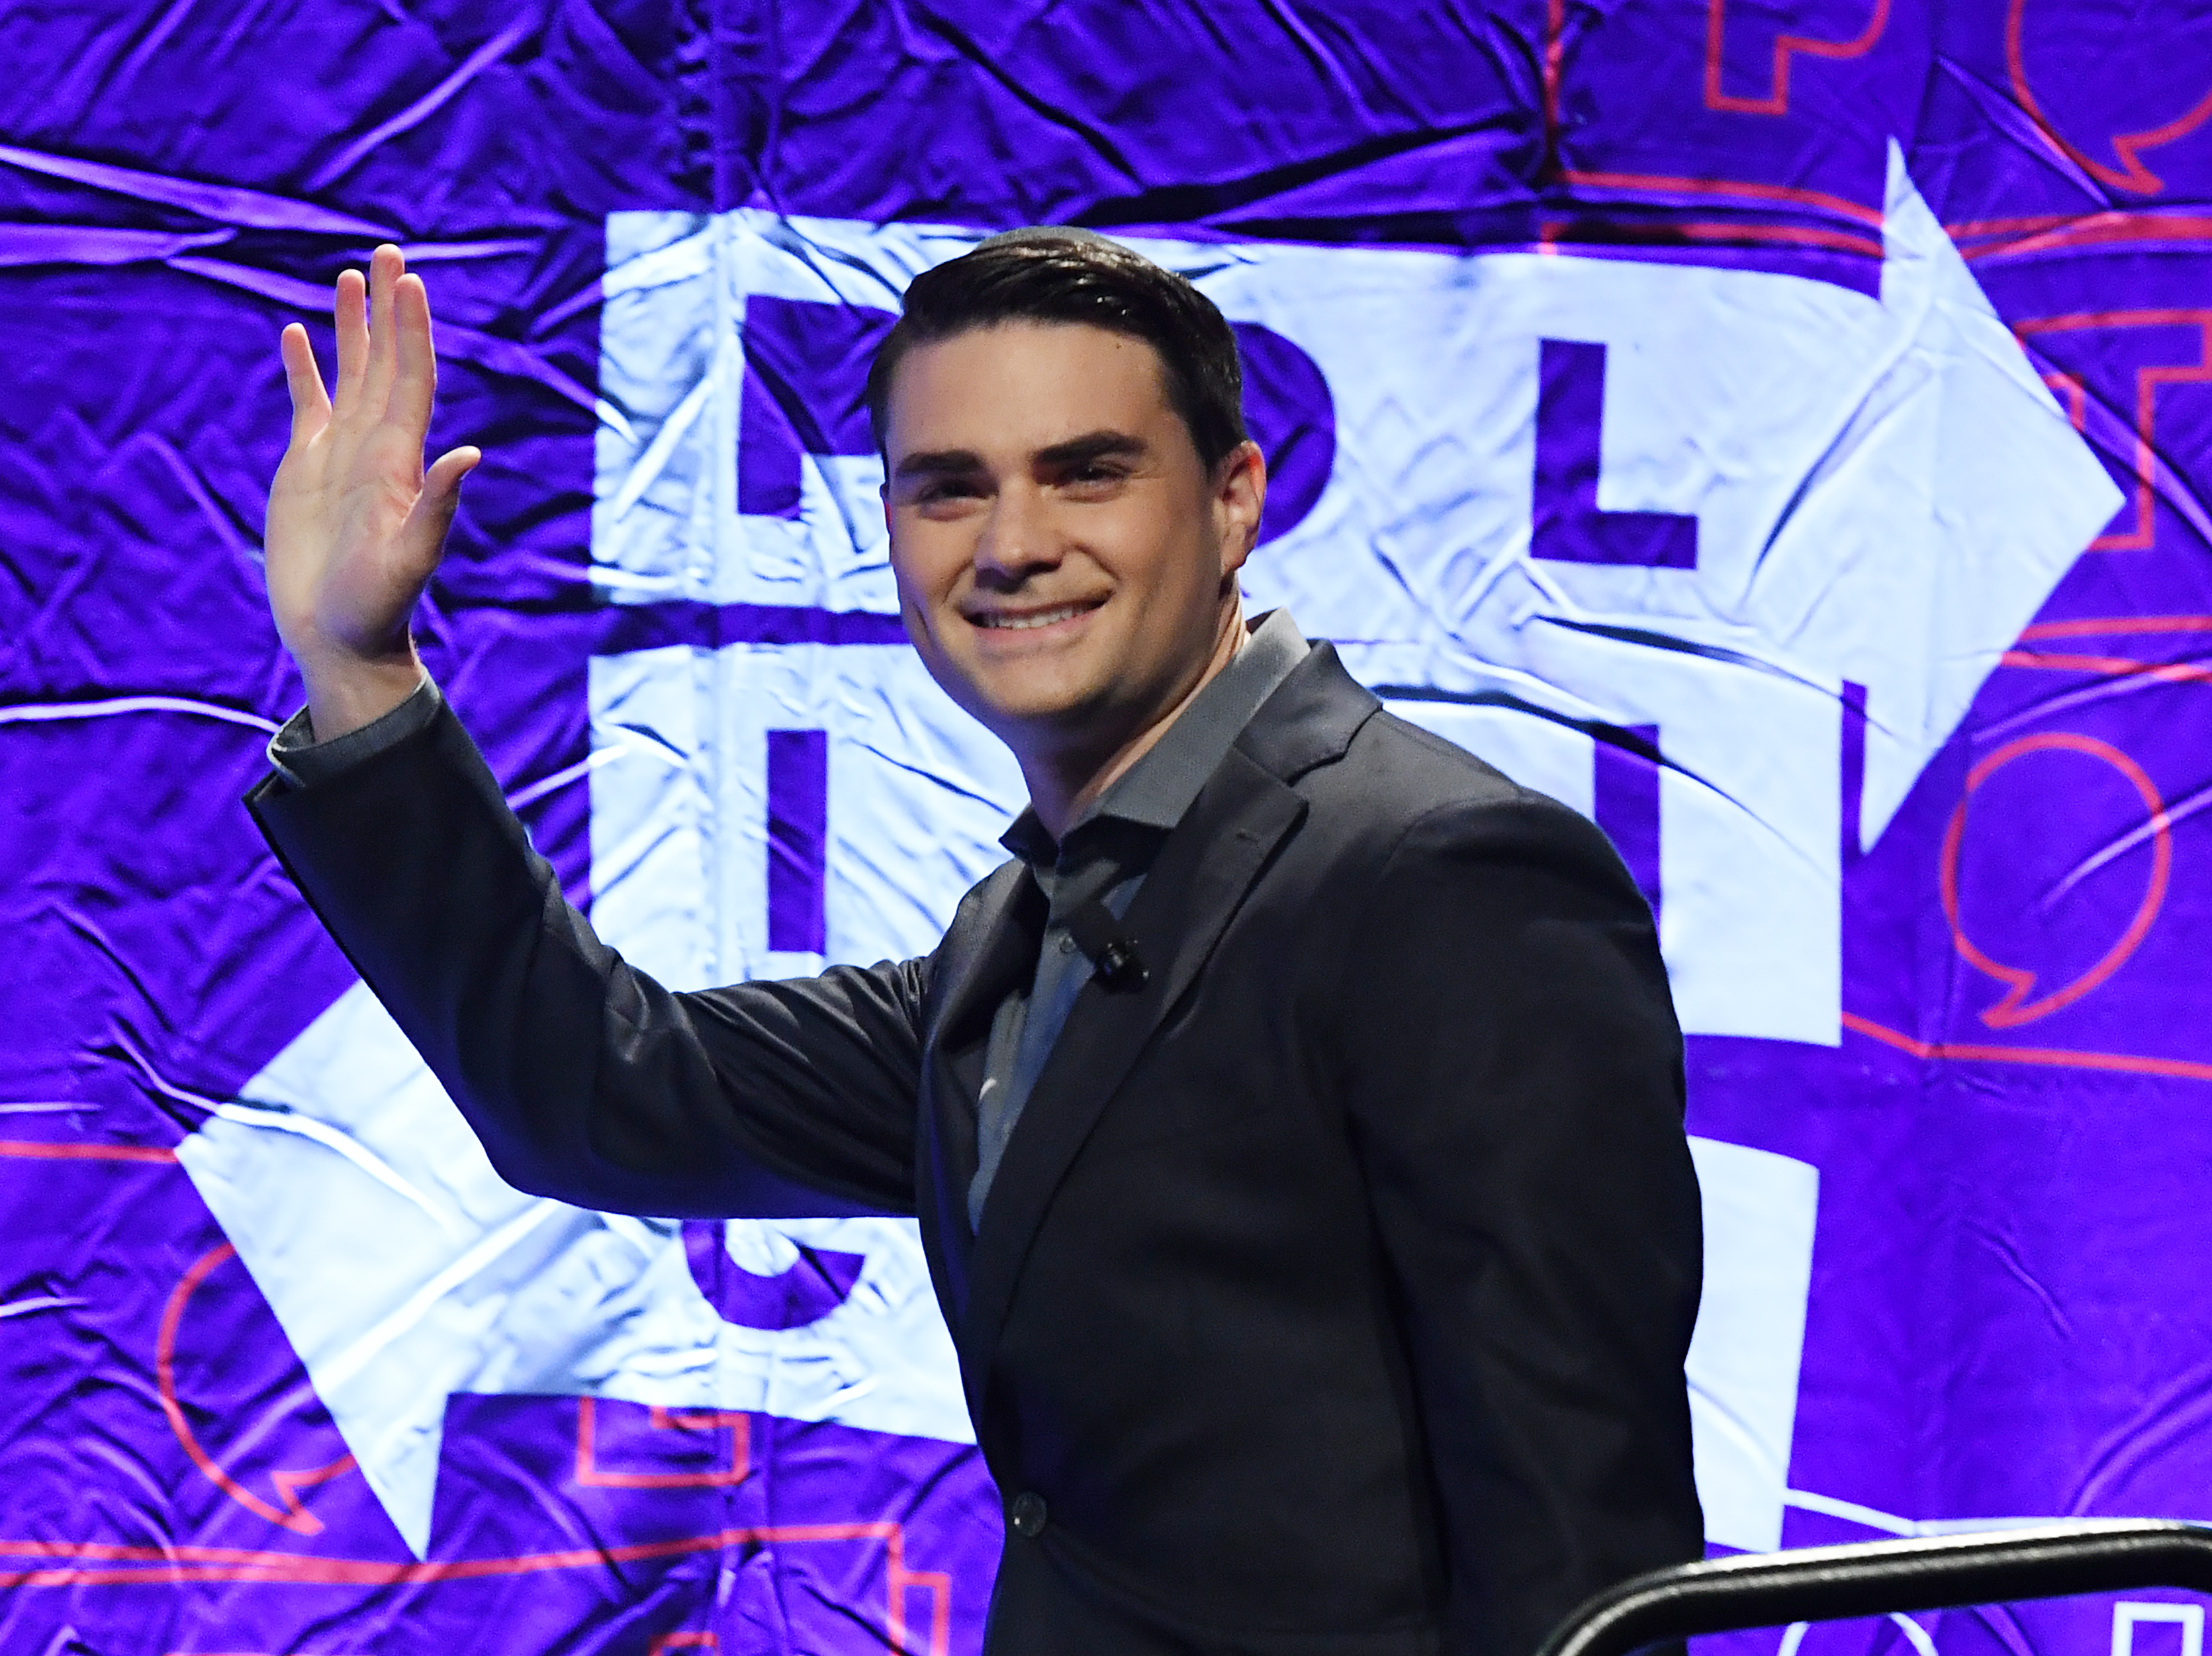 Conservative political commentator, writer and lawyer Ben Shapiro waves to the crowd as he arrives to speak at the 2018 Politicon in Los Angeles, California on October 21, 2018. (Mark Ralston/AFP/Getty Images)